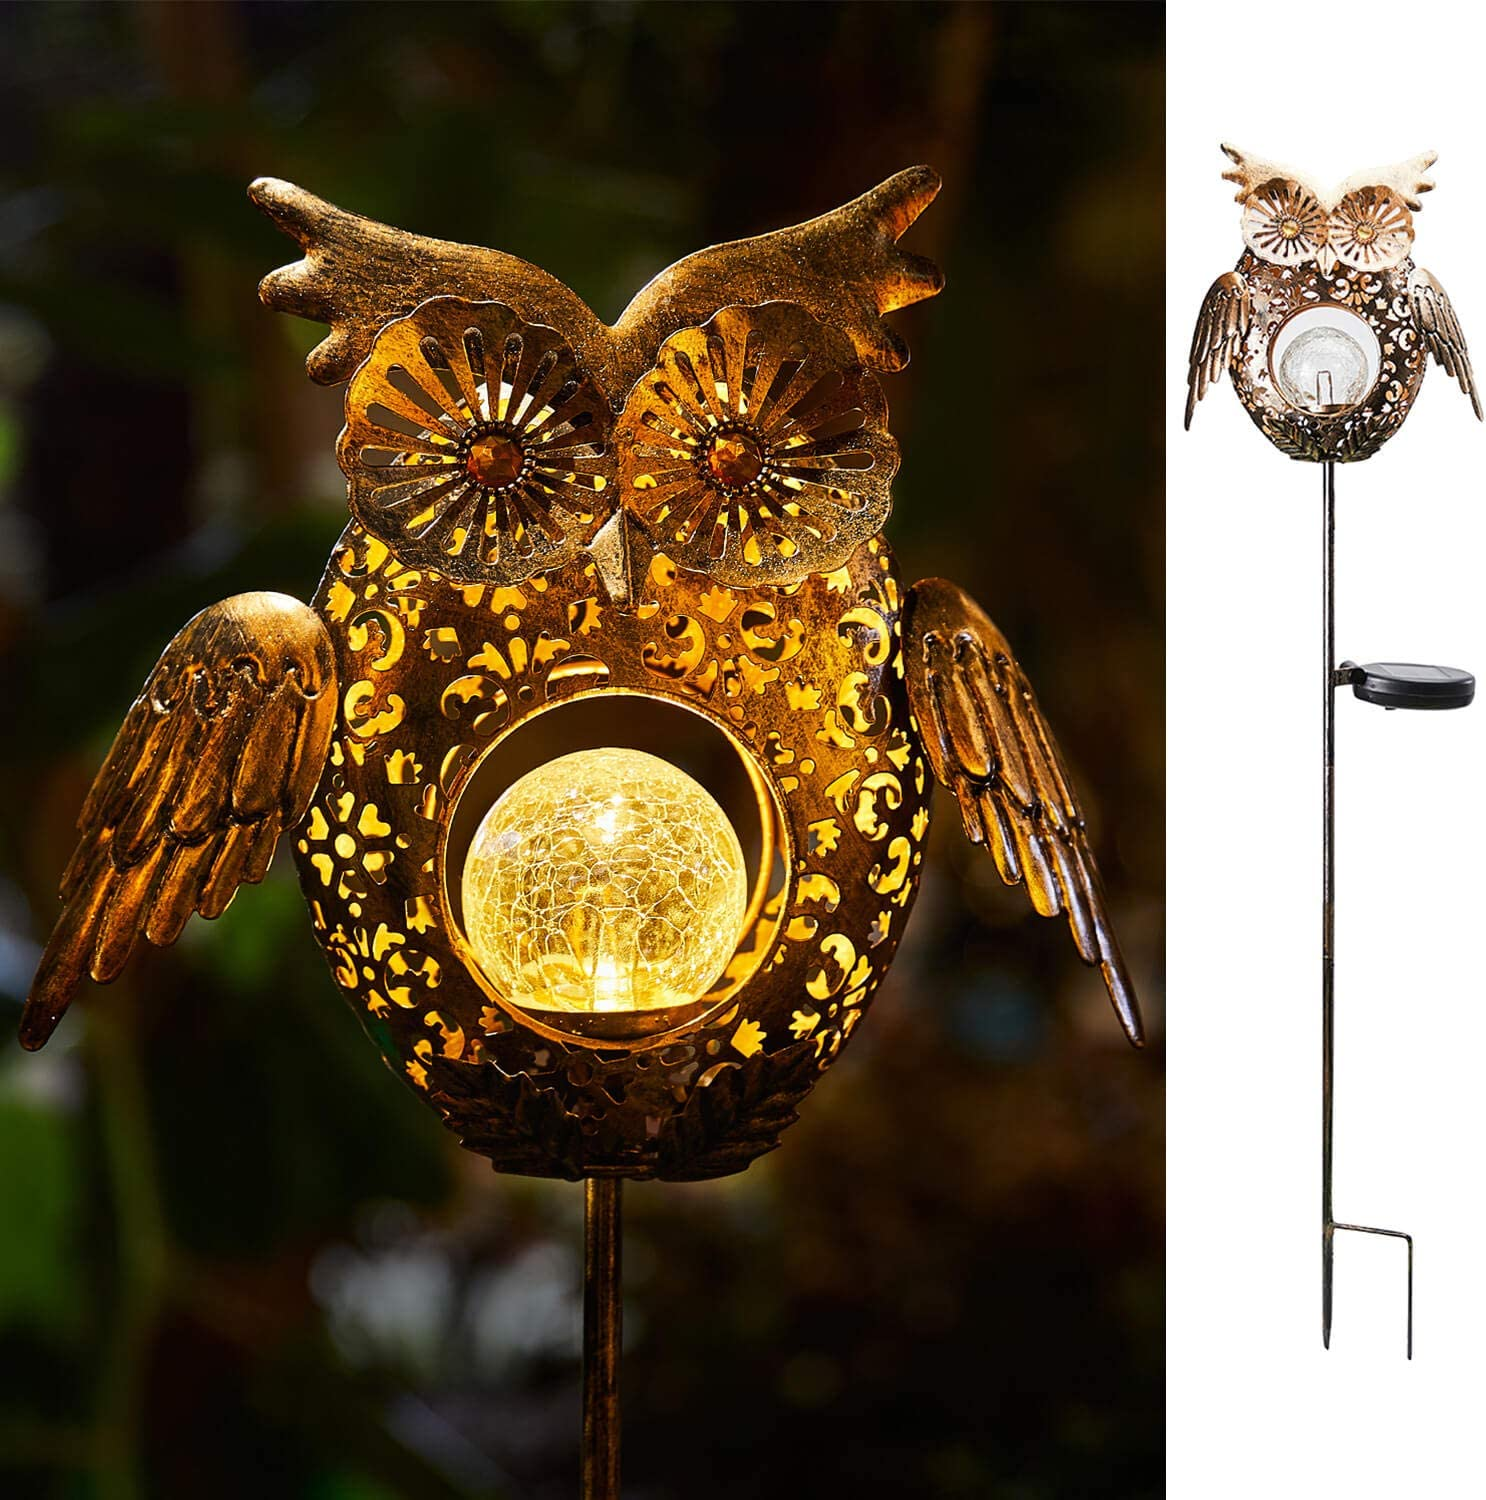 Go2garden Solar Lights Outdoor Owl Decorative Metal Stakes Lights Crackle Glass Light for Lawn, Yard Art, Pathway, Patio Decor(Bronze)